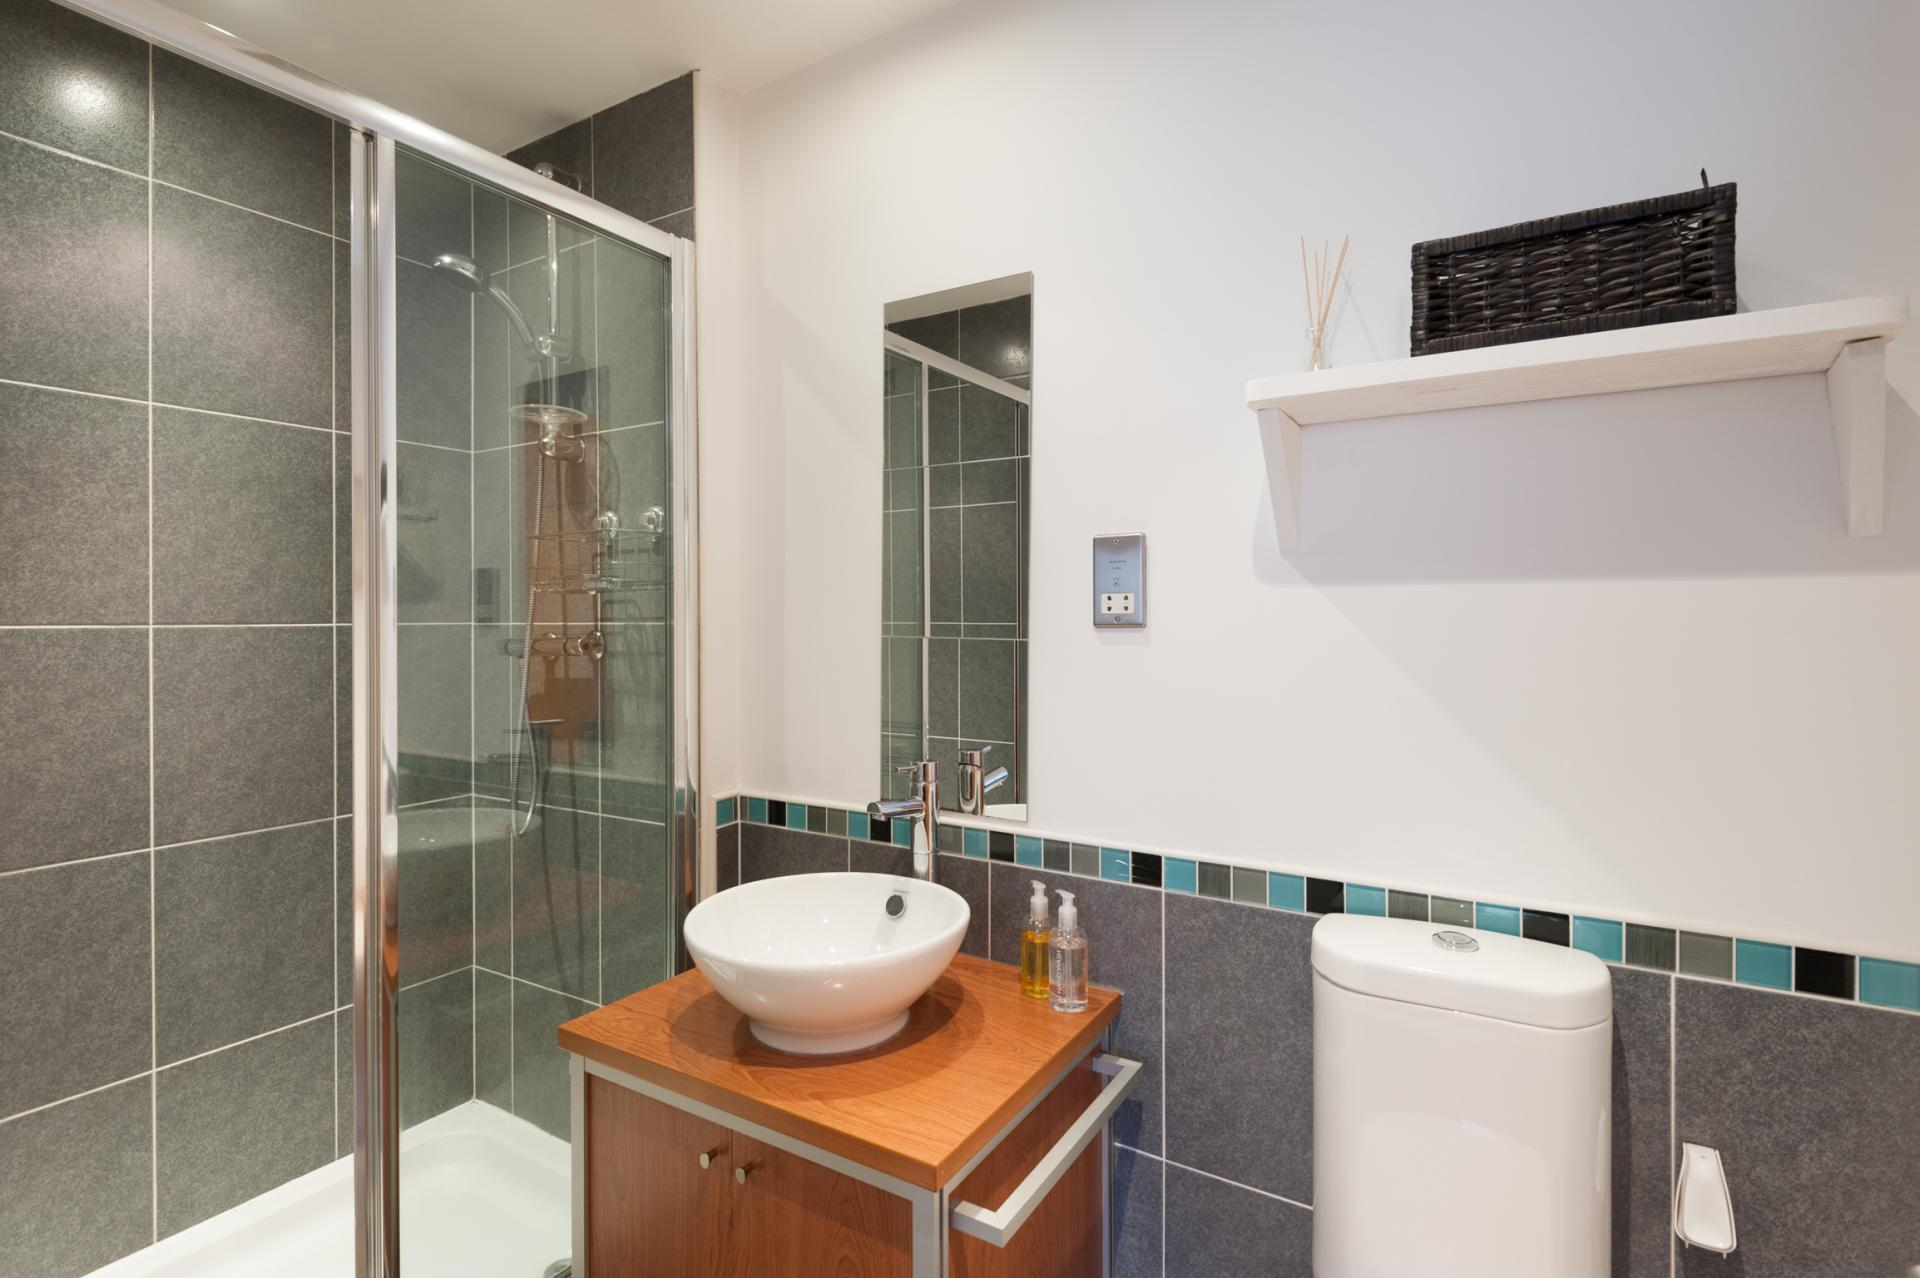 Shower at Metropole Apartment